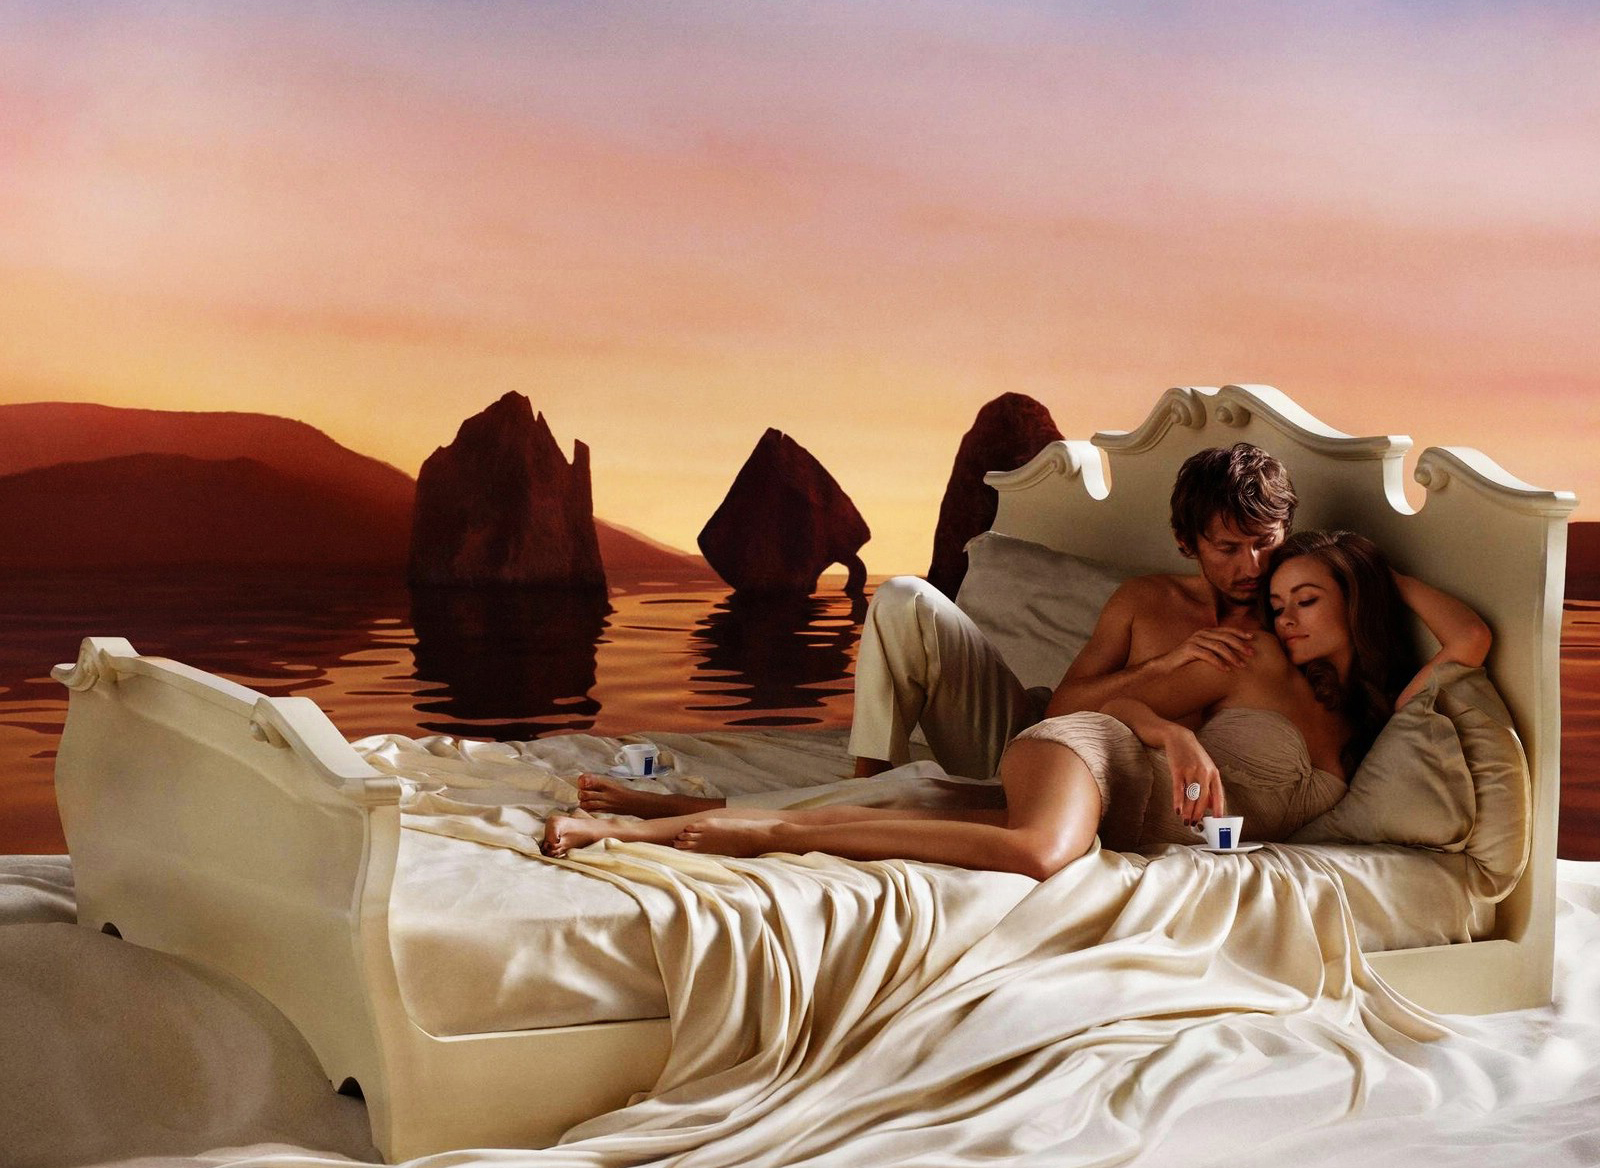 Romantic Couple On Bed Image